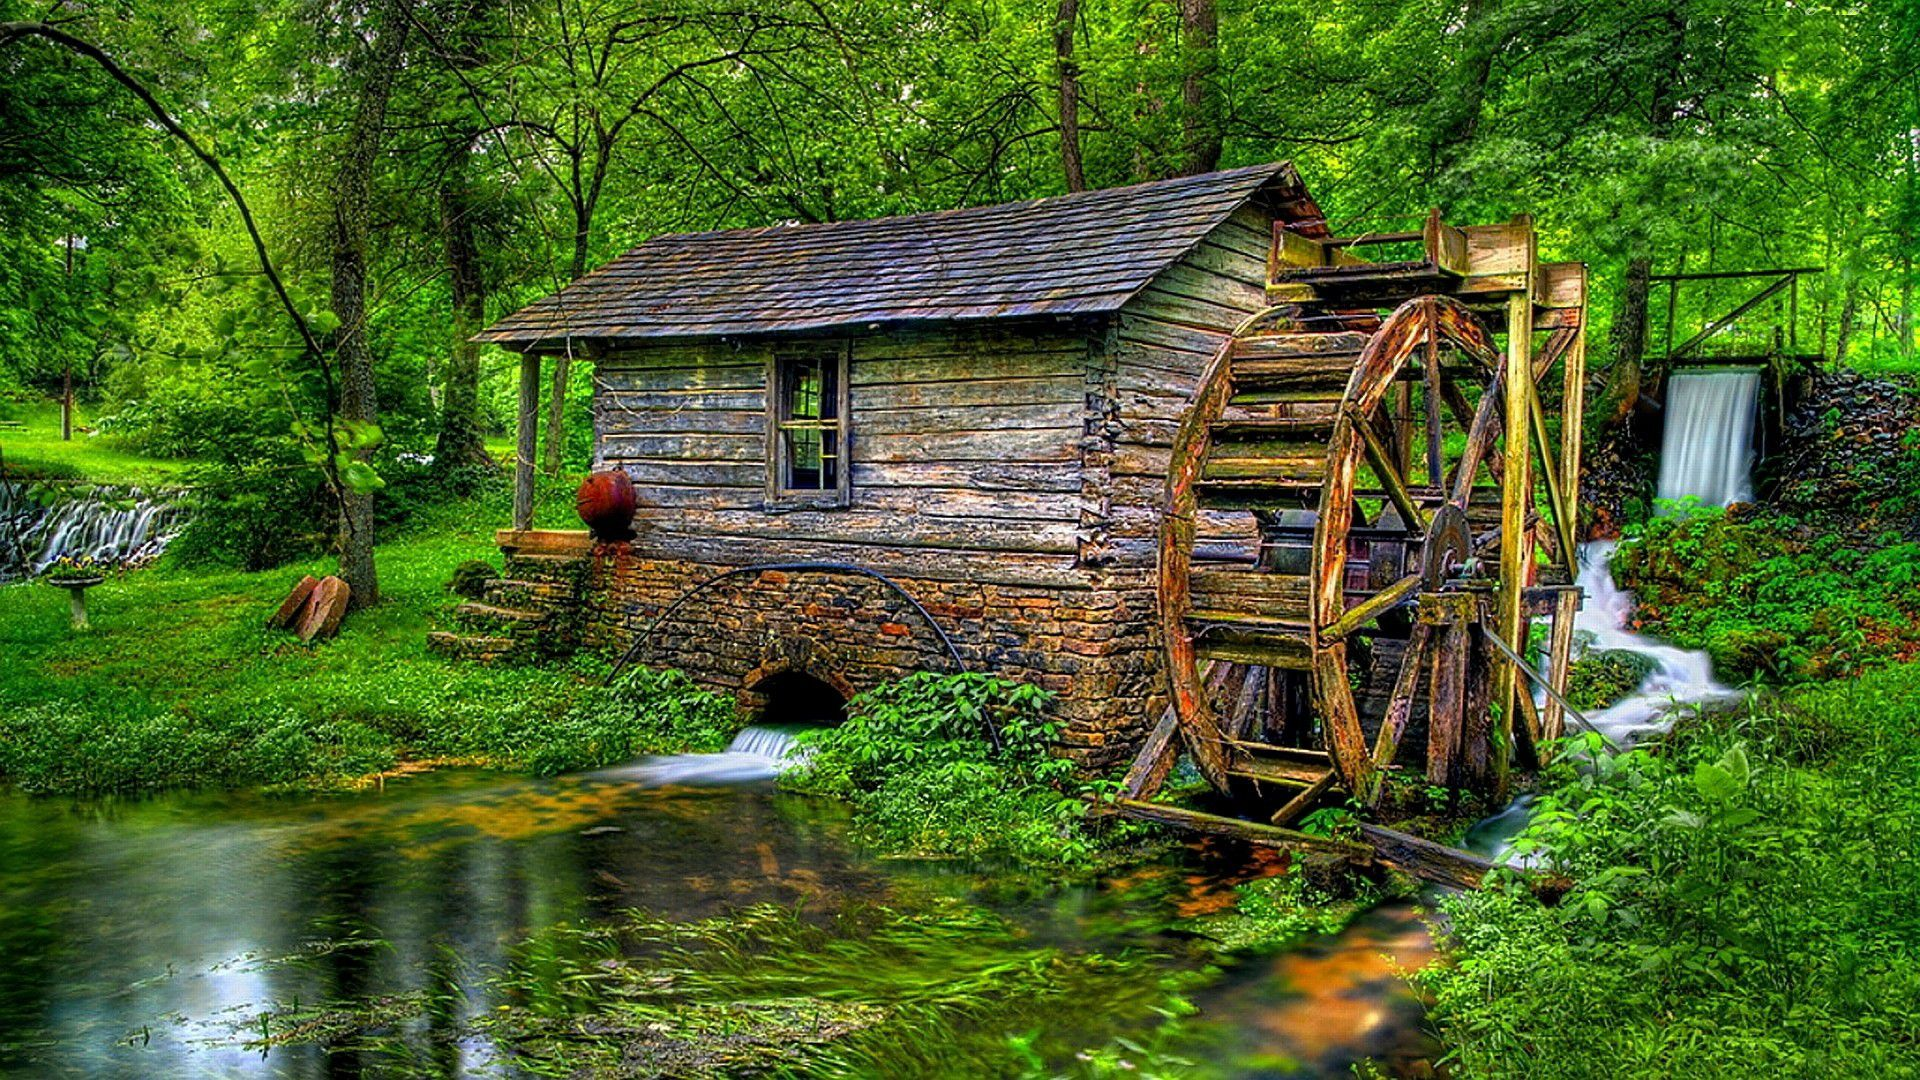 Watermill in the forest